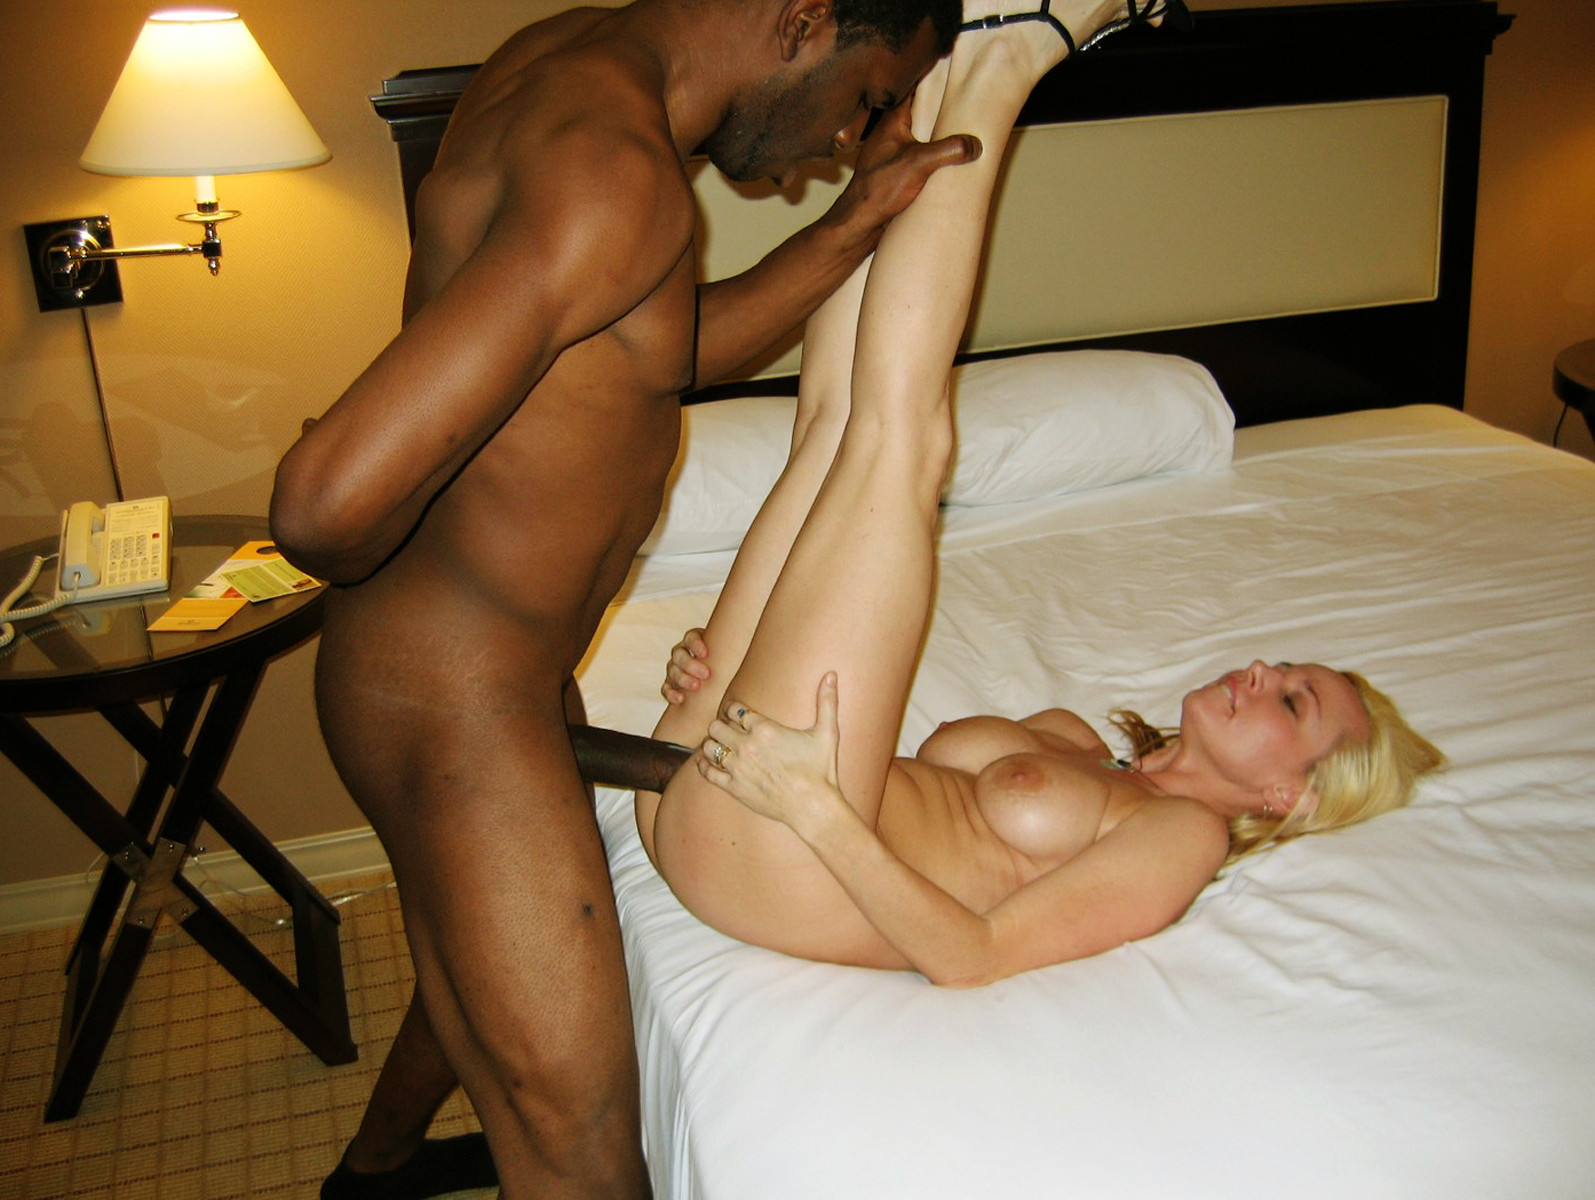 black-stud-fucking-white-mature-woman-unblocked-porn-in-uae